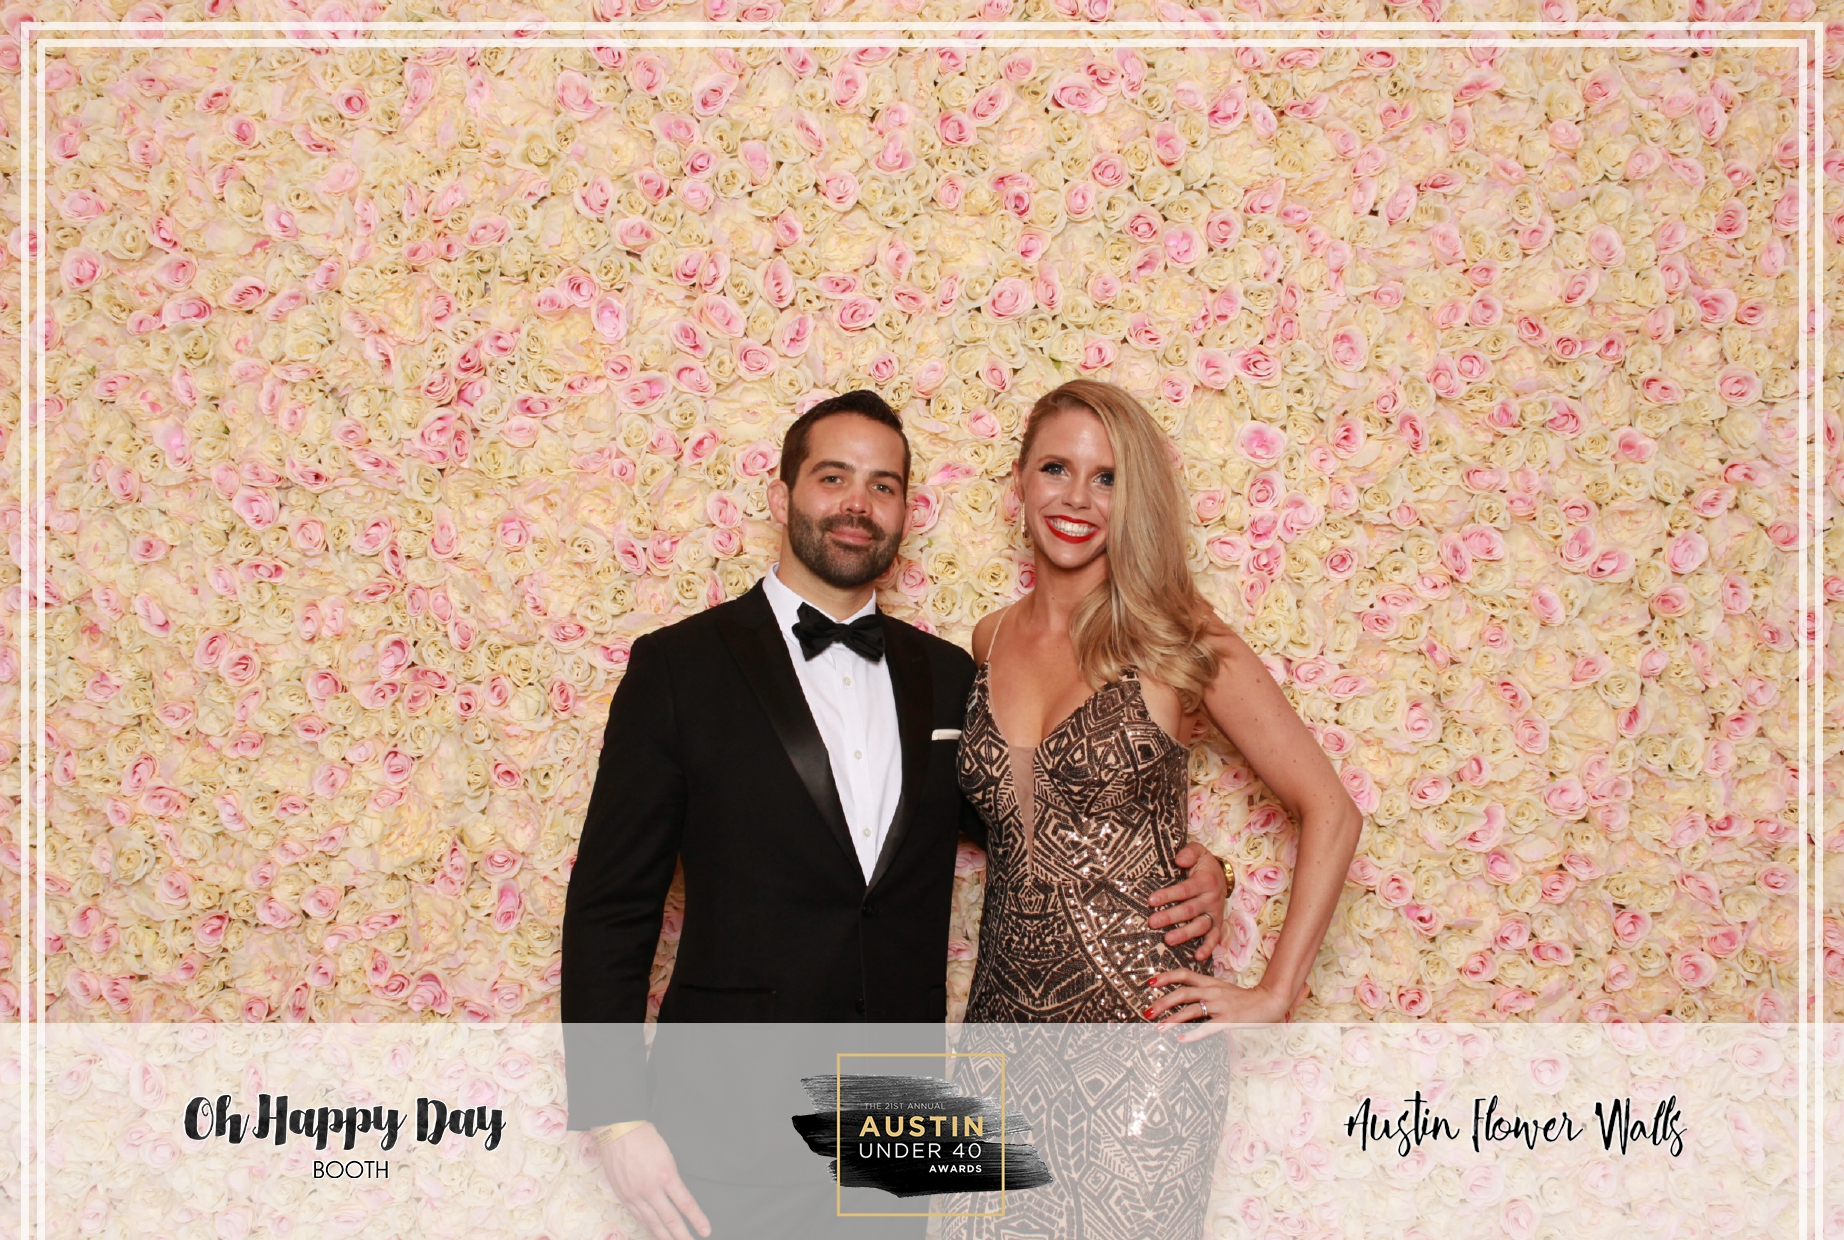 Oh Happy Day Booth - Austin Under 40-75.jpg